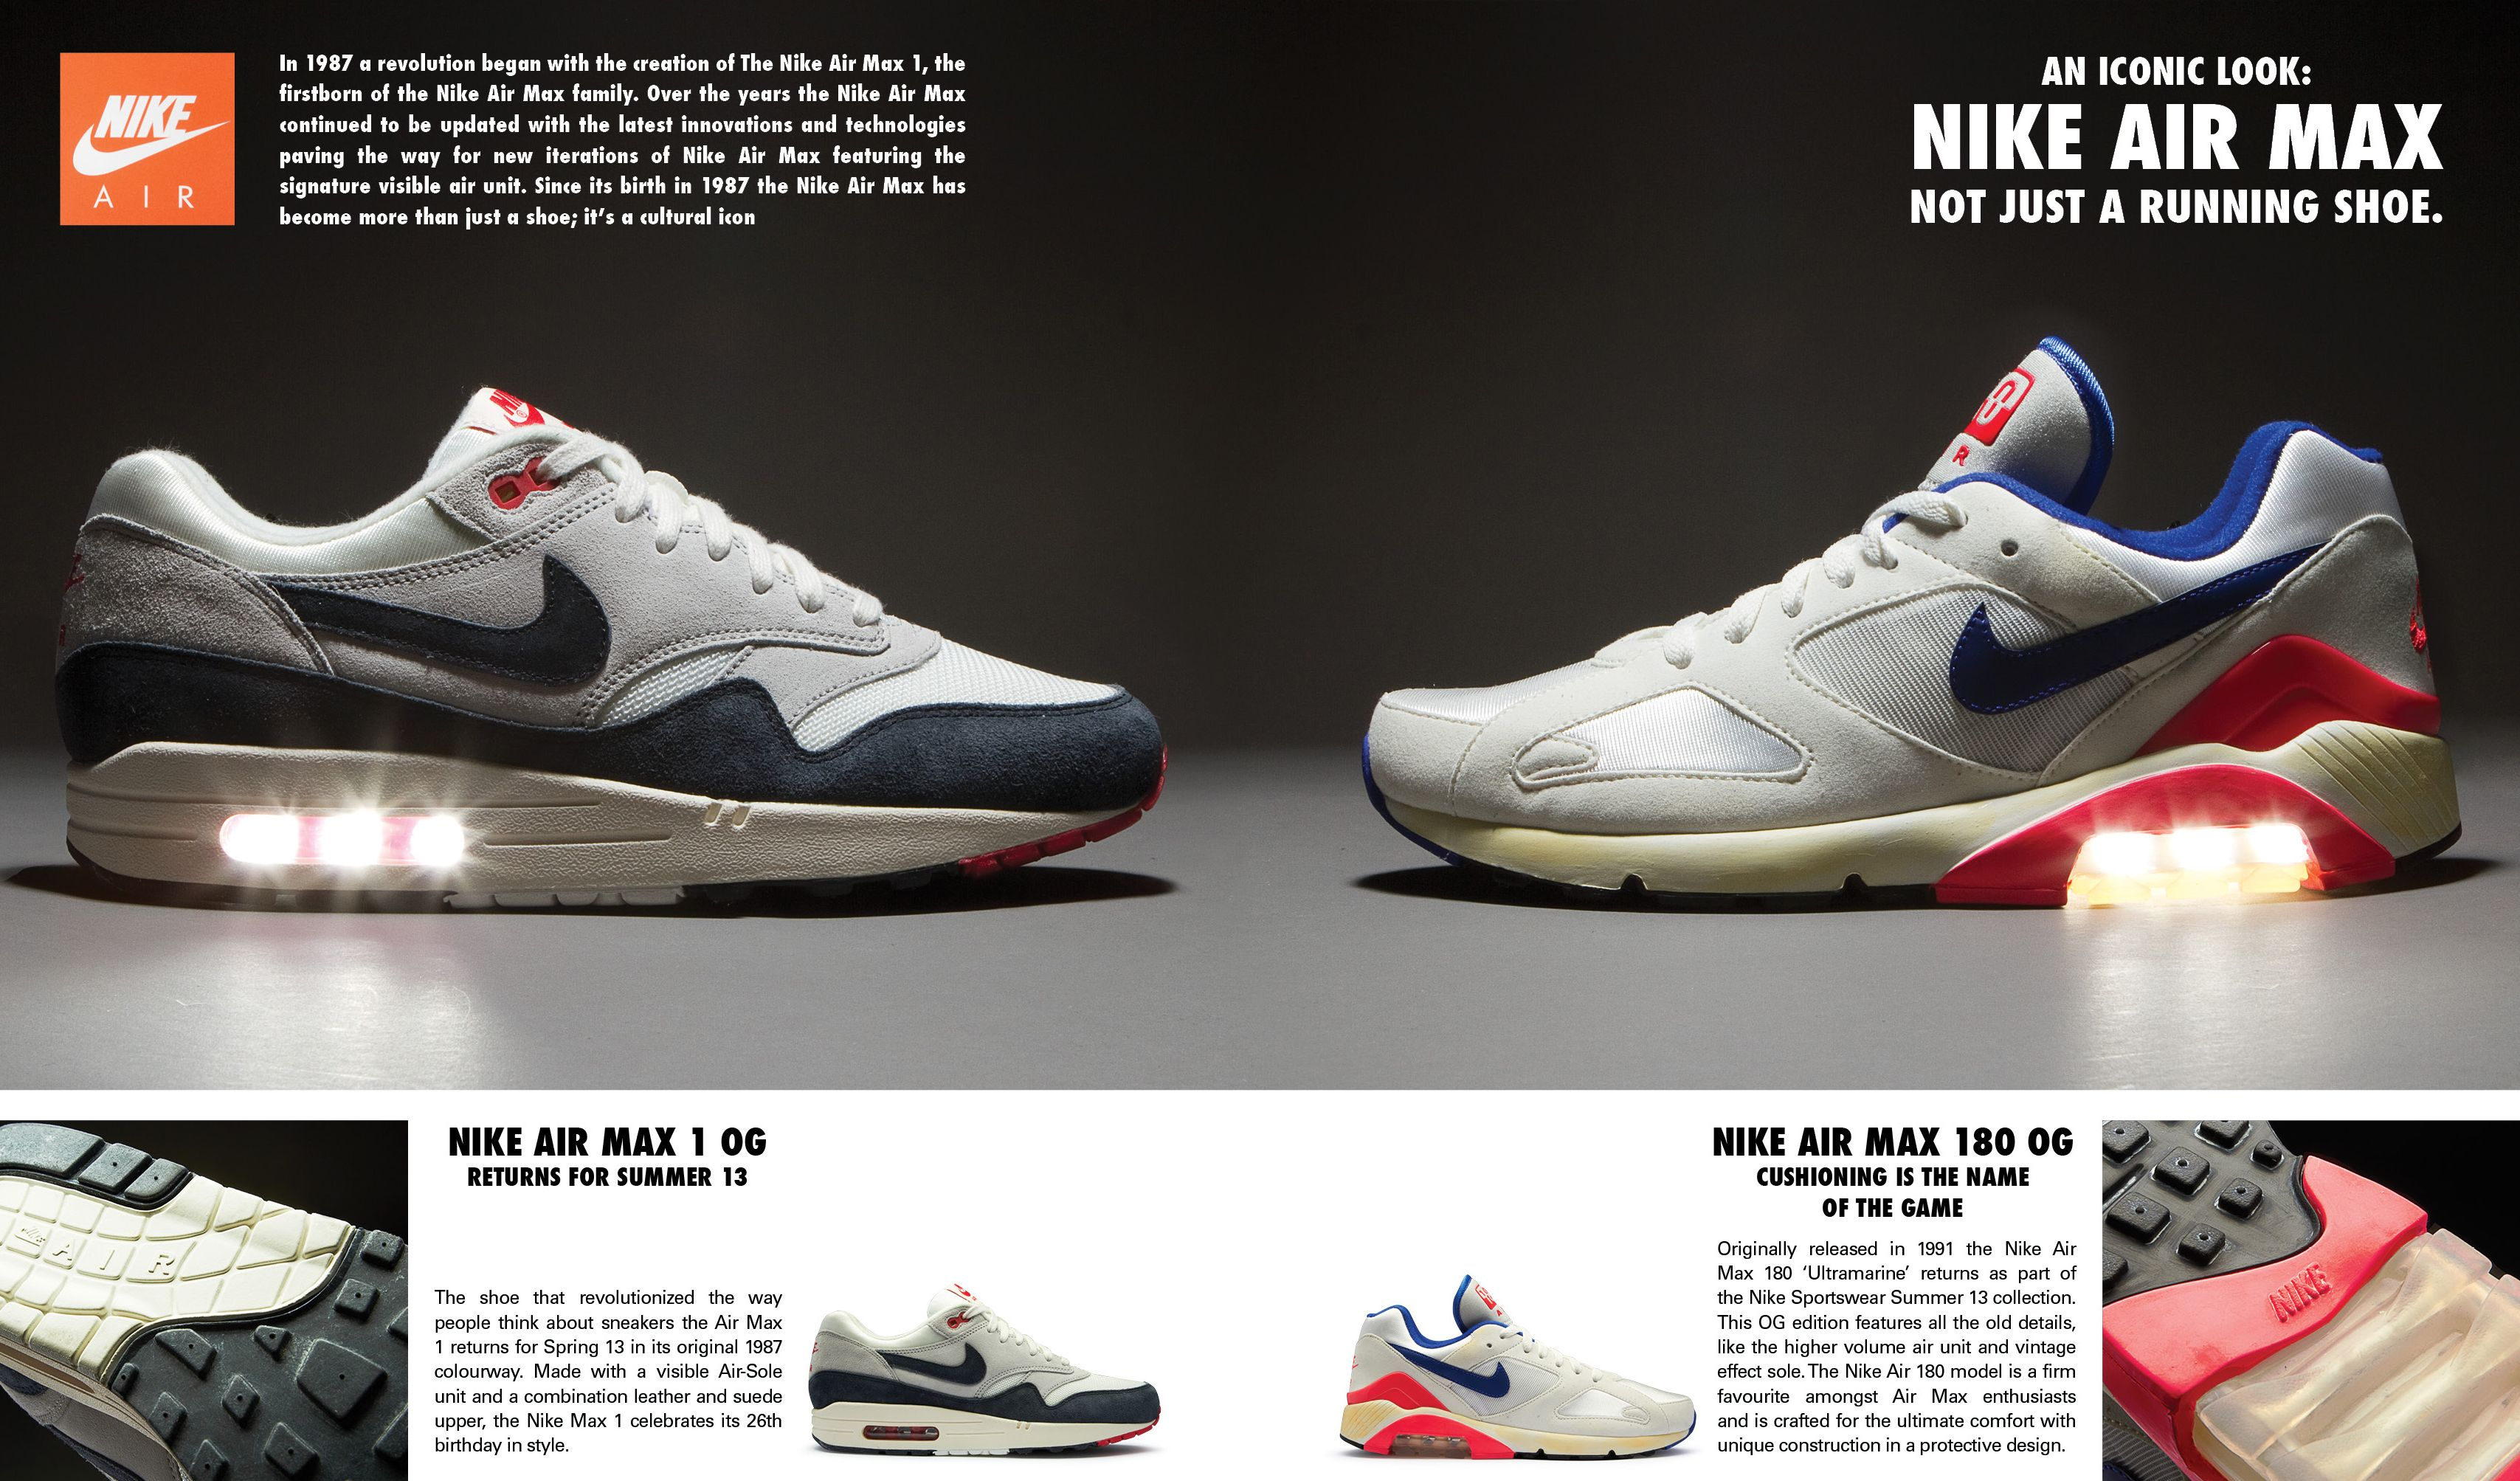 Pin by smilingeveryork . on sneaker retro in 2019 | Nike air